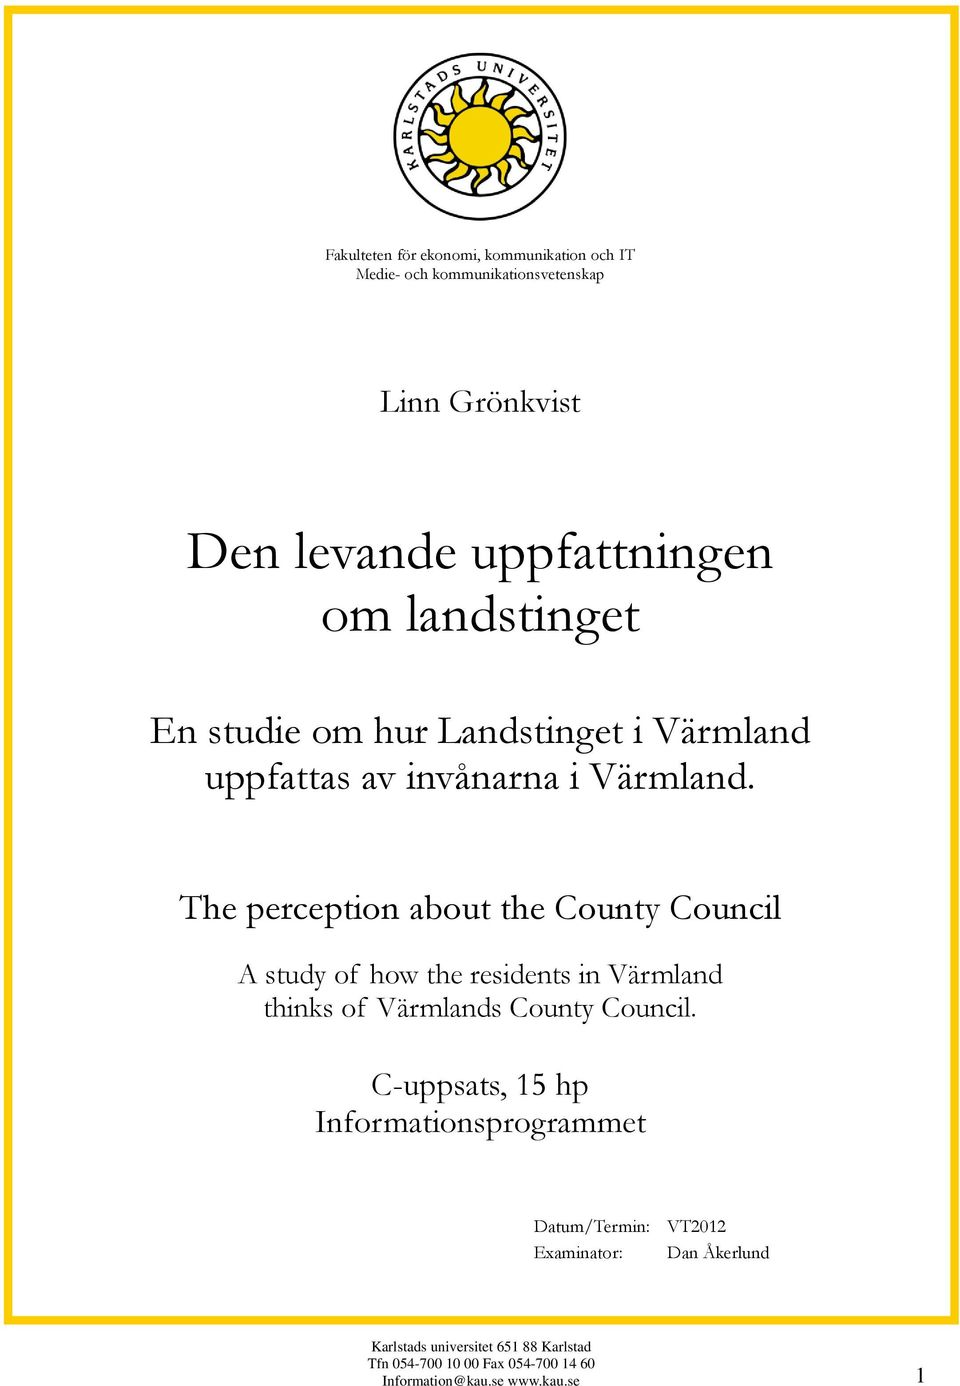 The perception about the County Council A study of how the residents in Värmland thinks of Värmlands County Council.